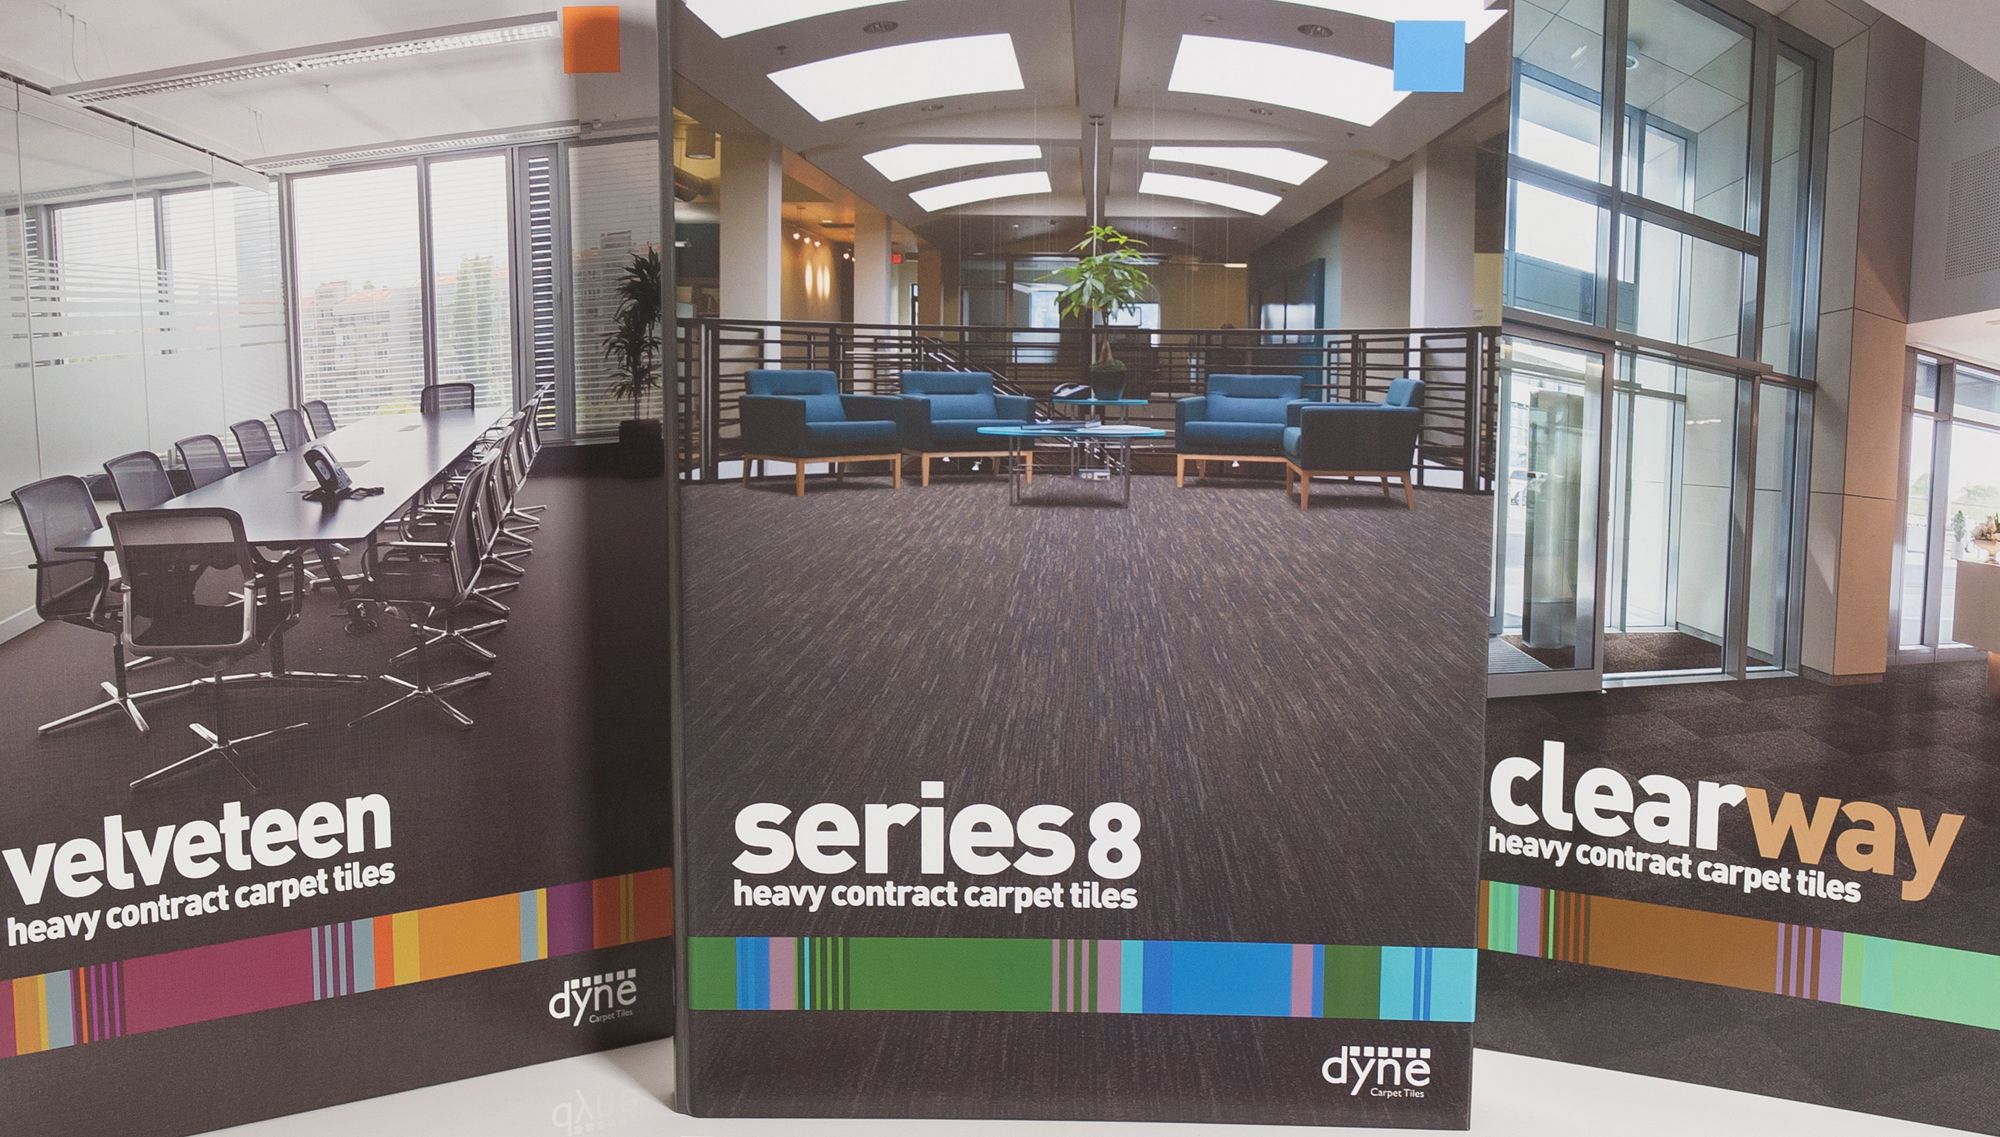 Sample Books for Dyne Carpet Tiles